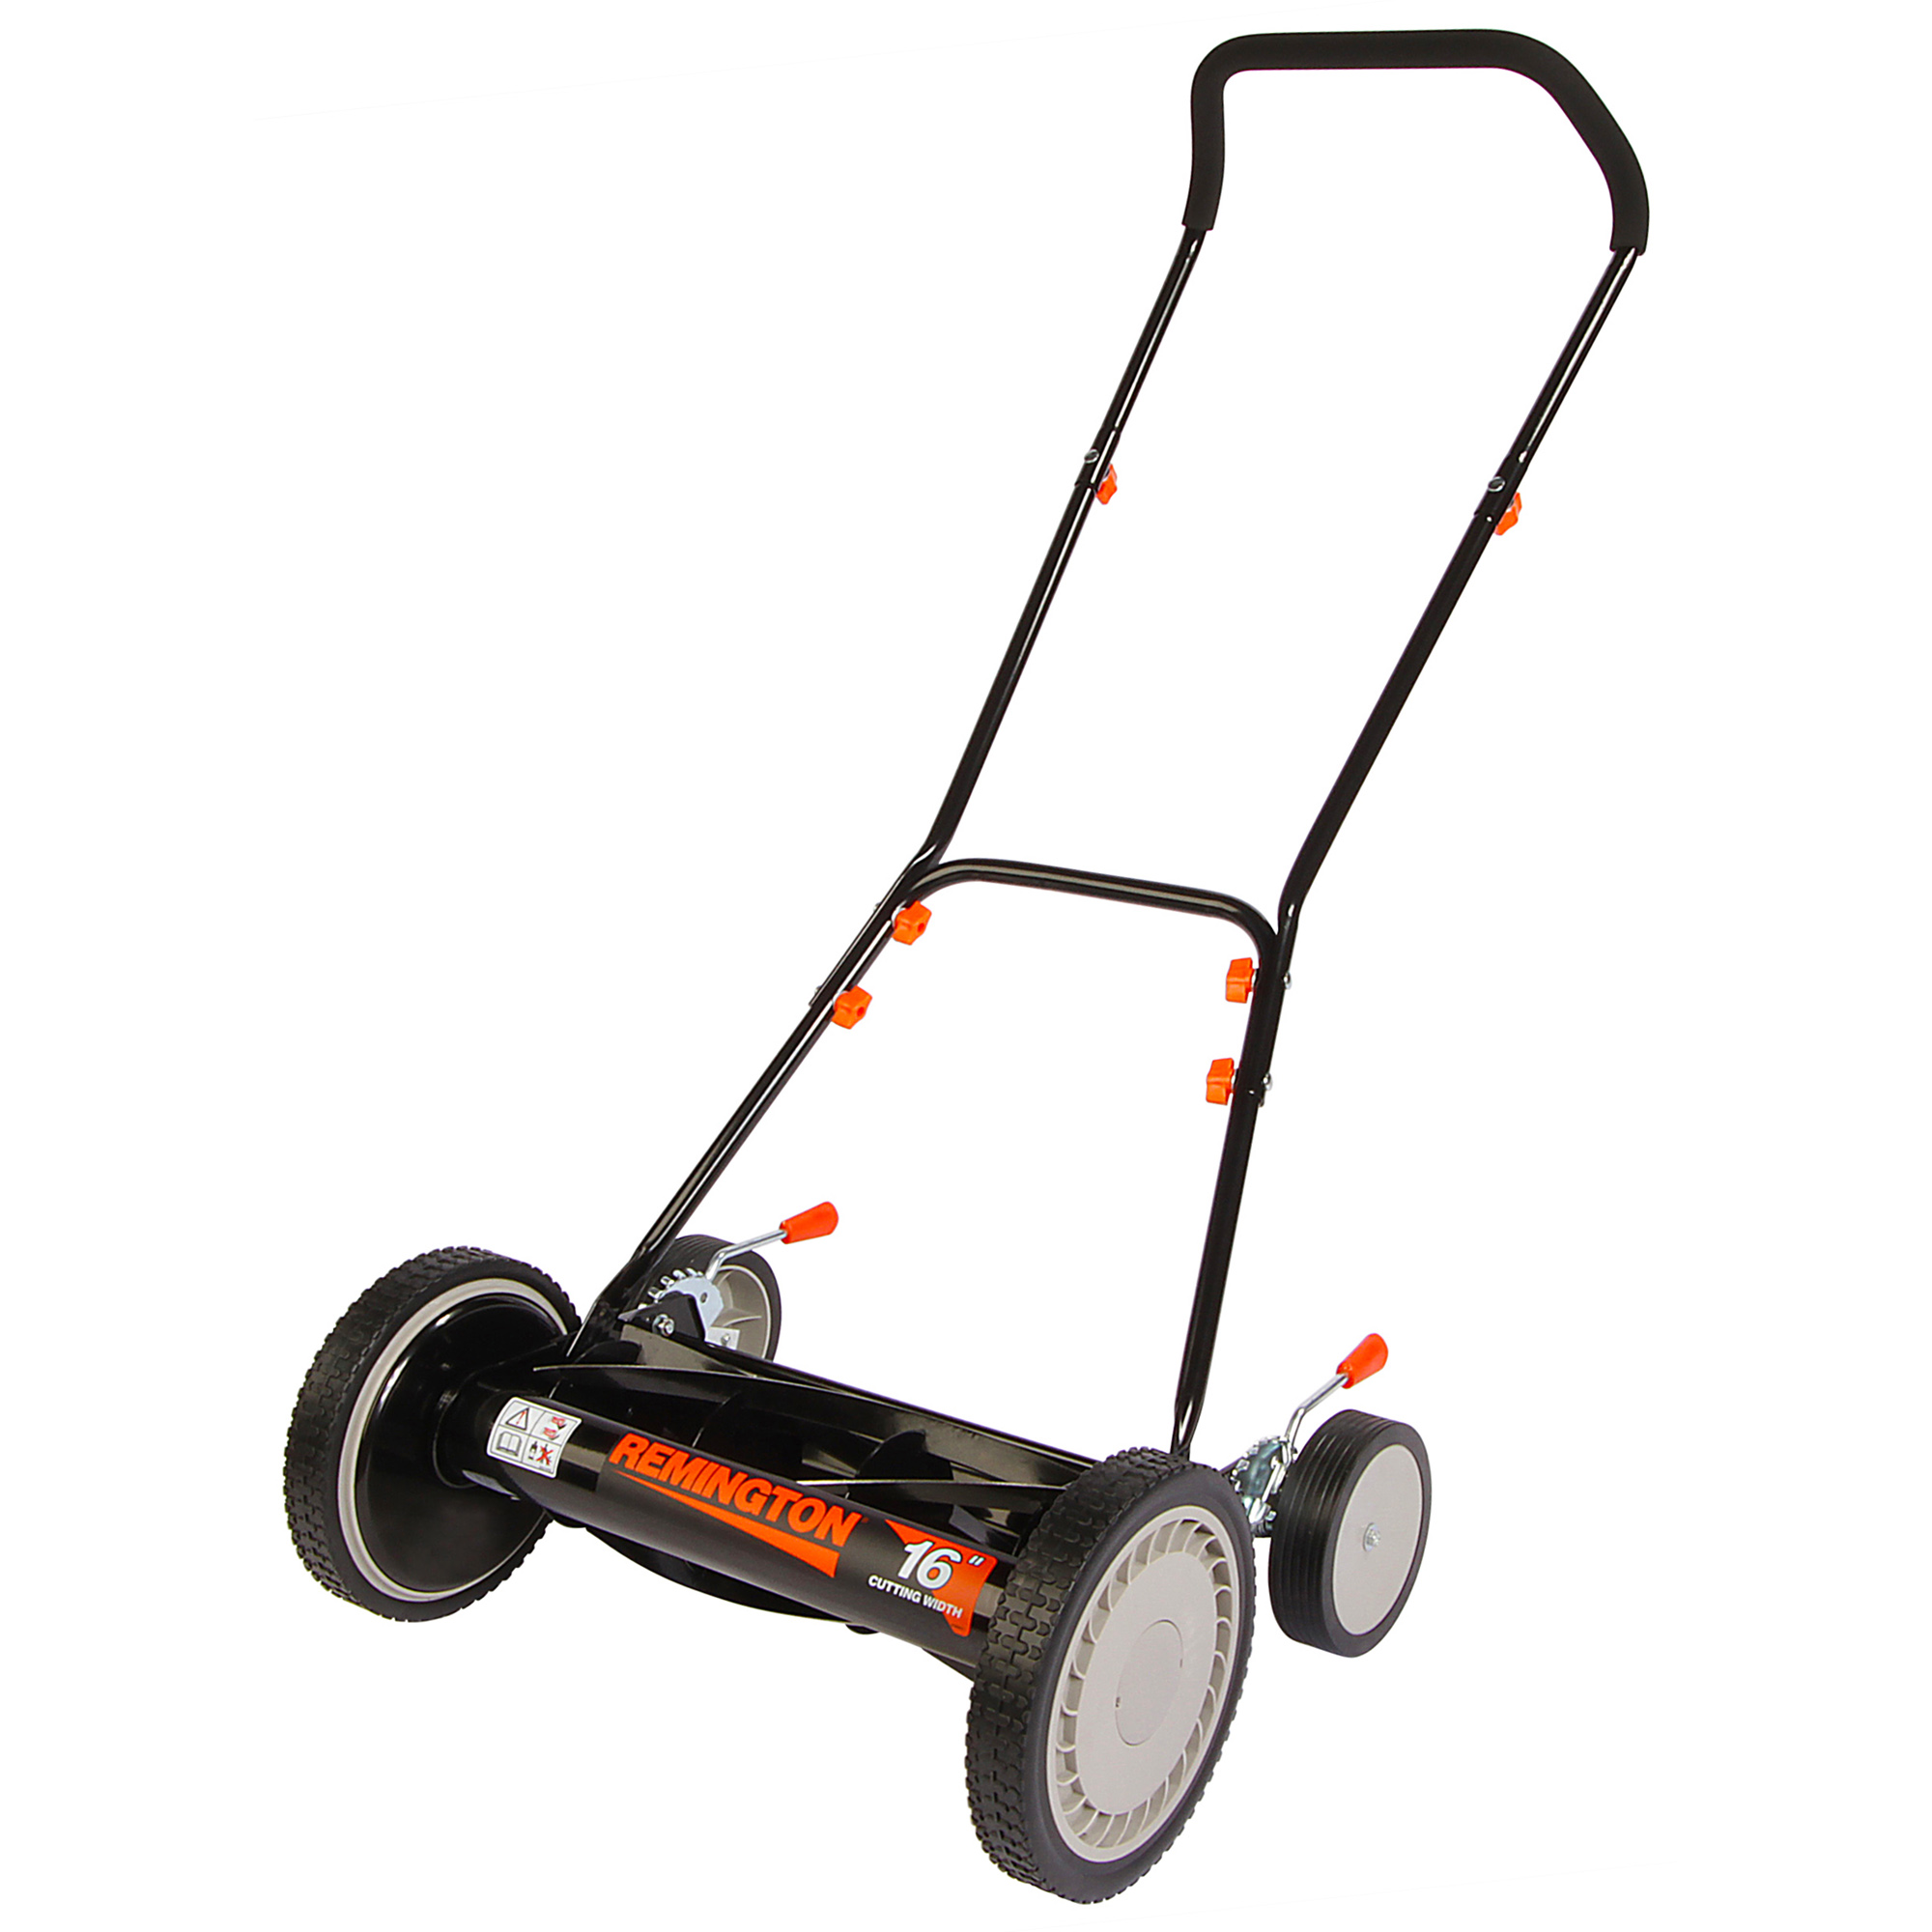 Remington 15A-3000783 16 in. Push Reel Mower